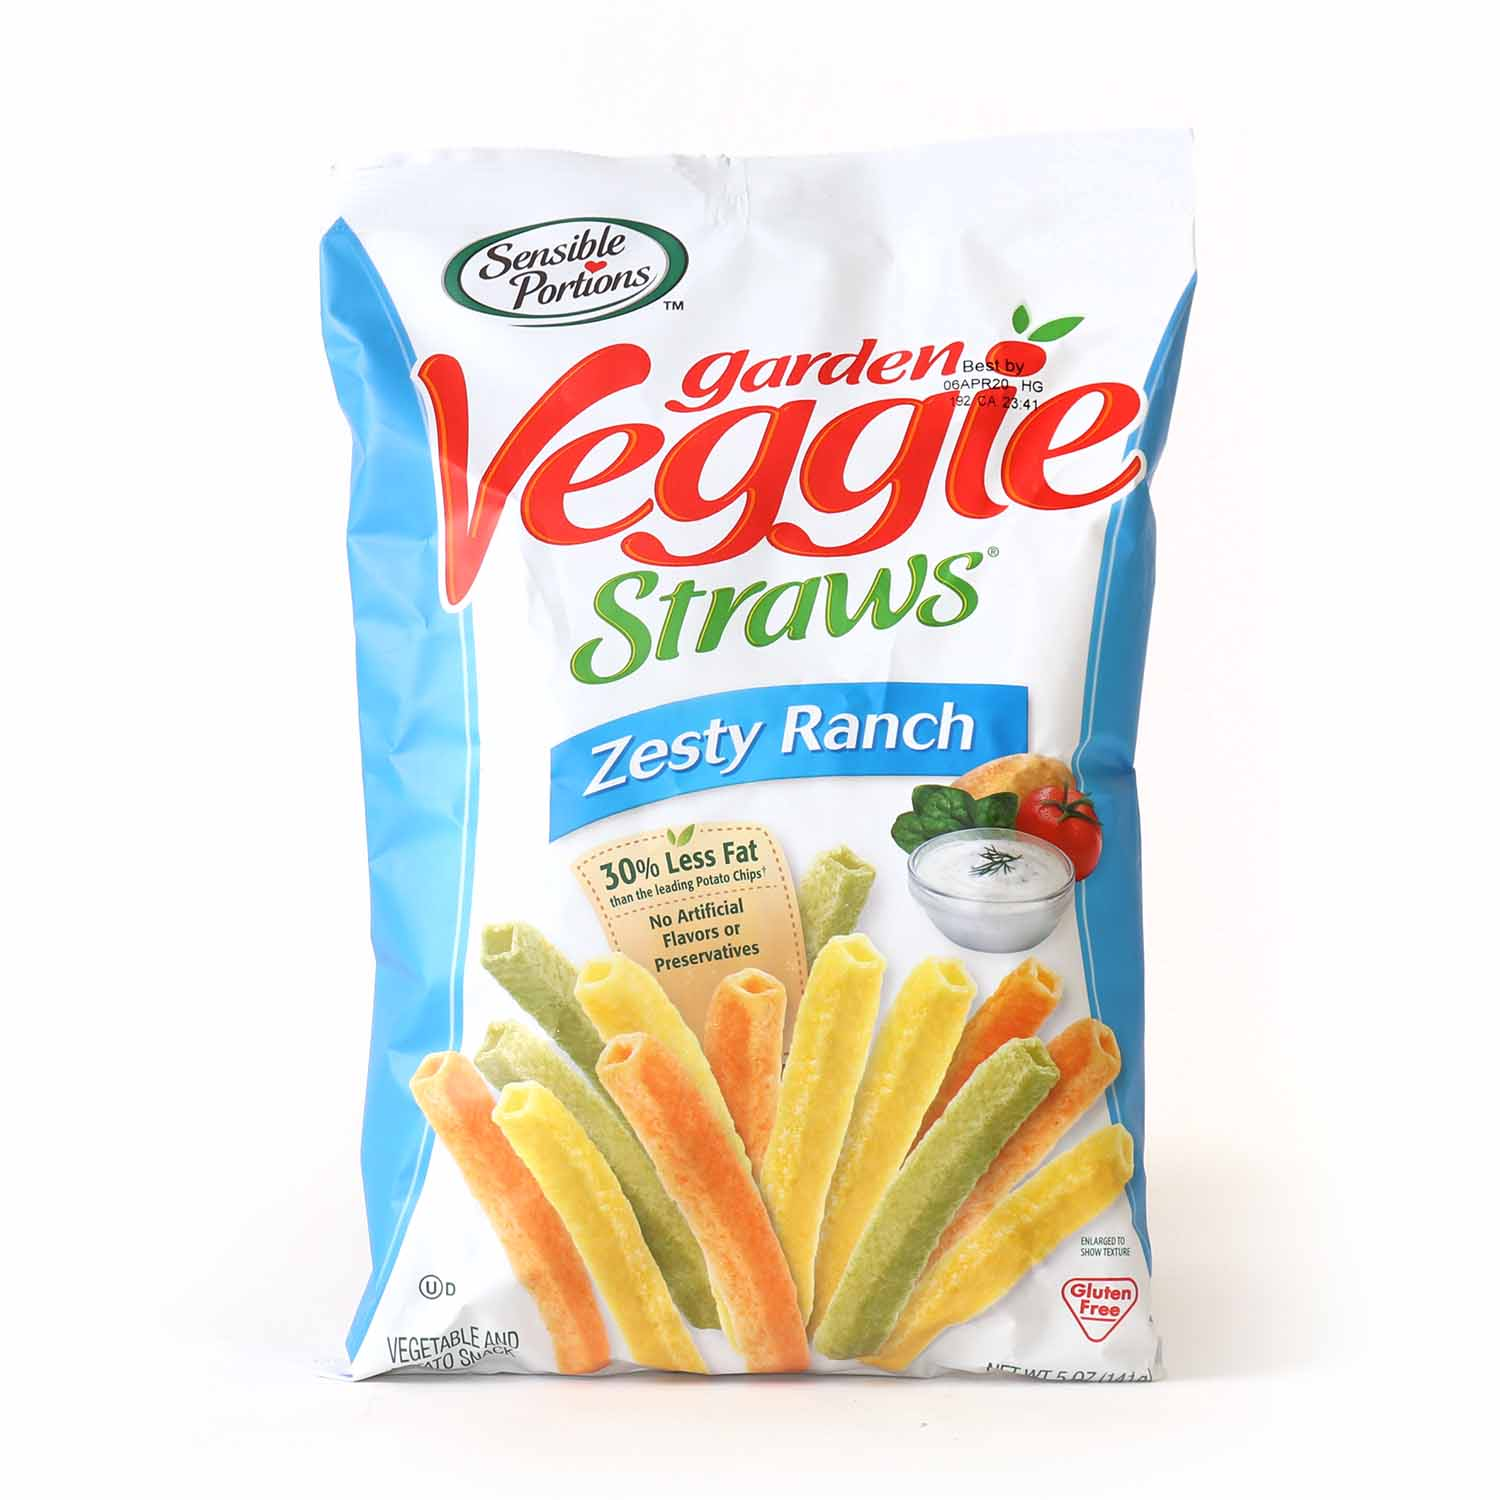 Veggie Straws, Zesty Ranch